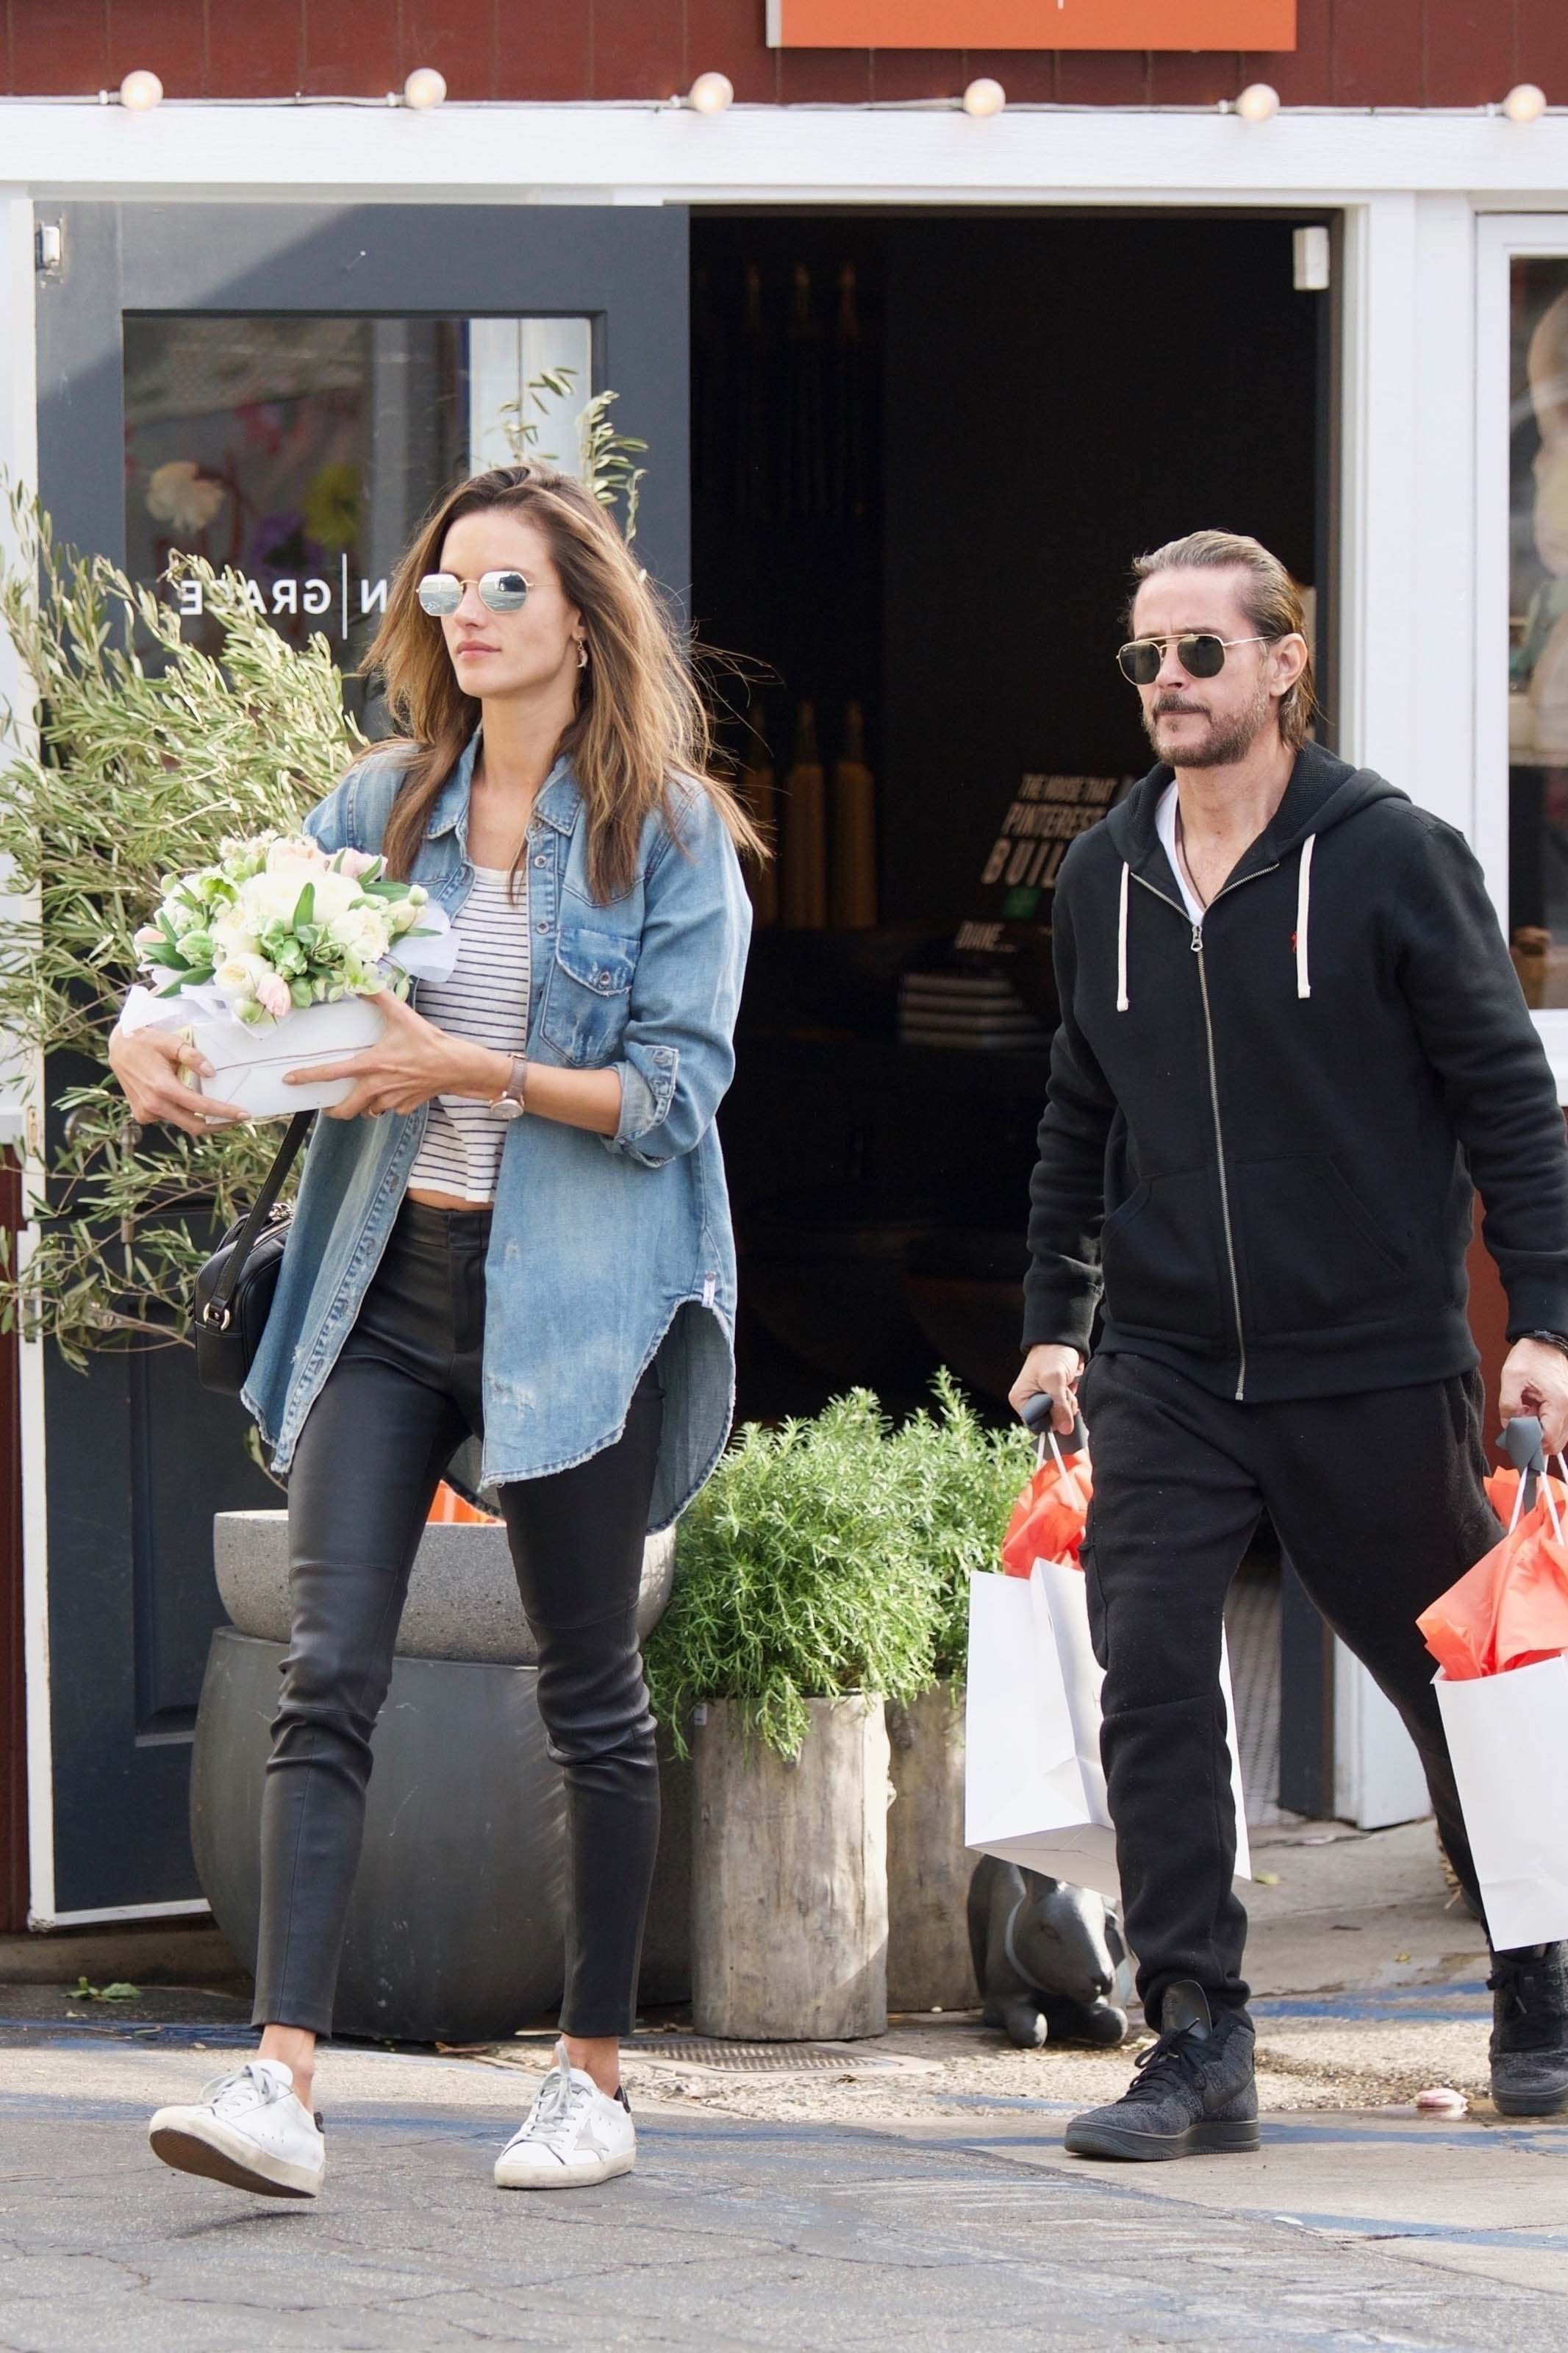 Alessandra Ambrosio grabs some flowers for Easter